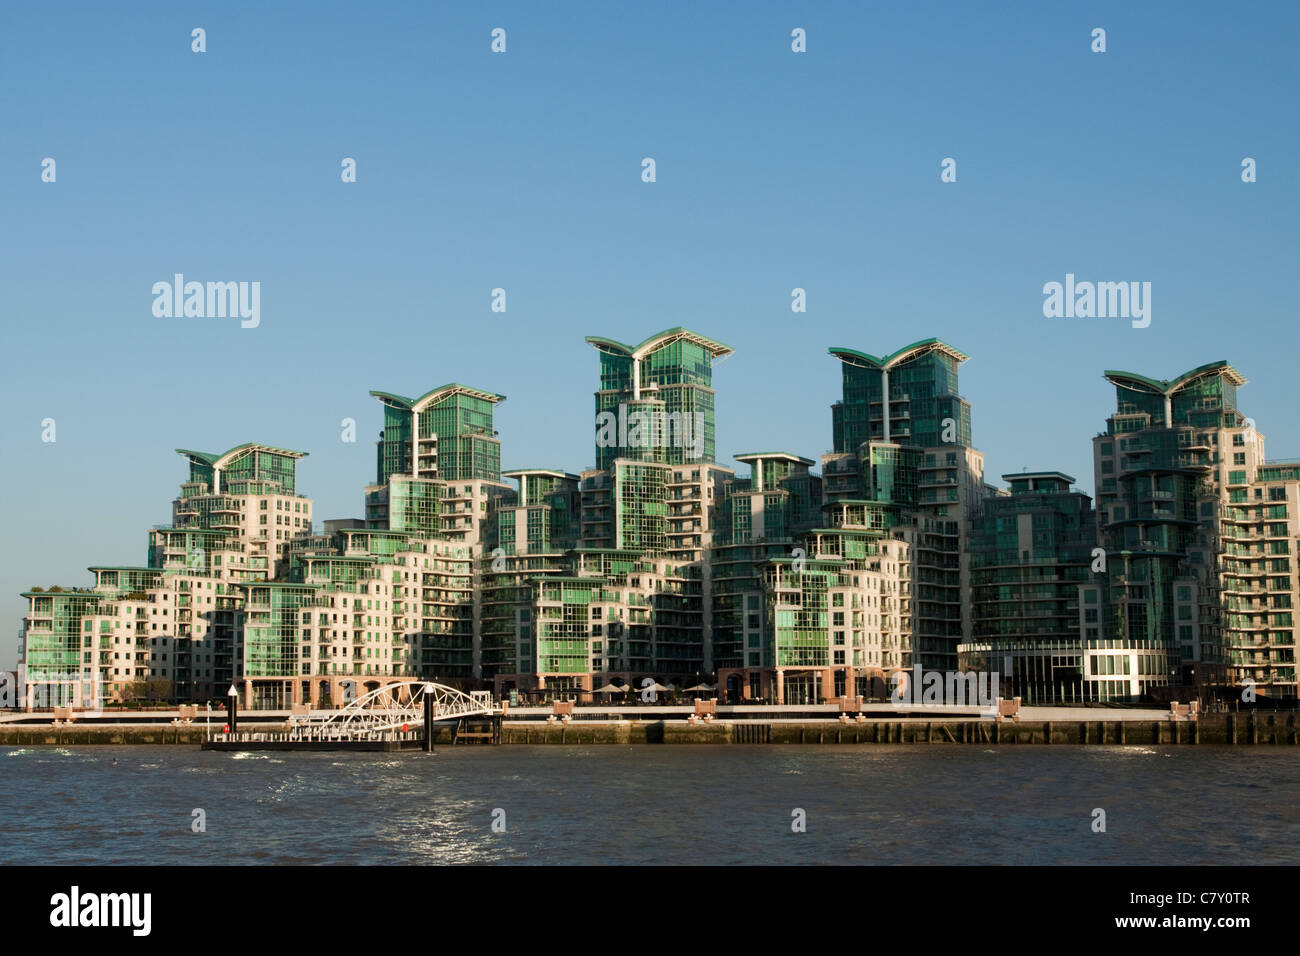 St George Wharf on the banks of the River Thames, Vauxhall, London, England, UK - Stock Image